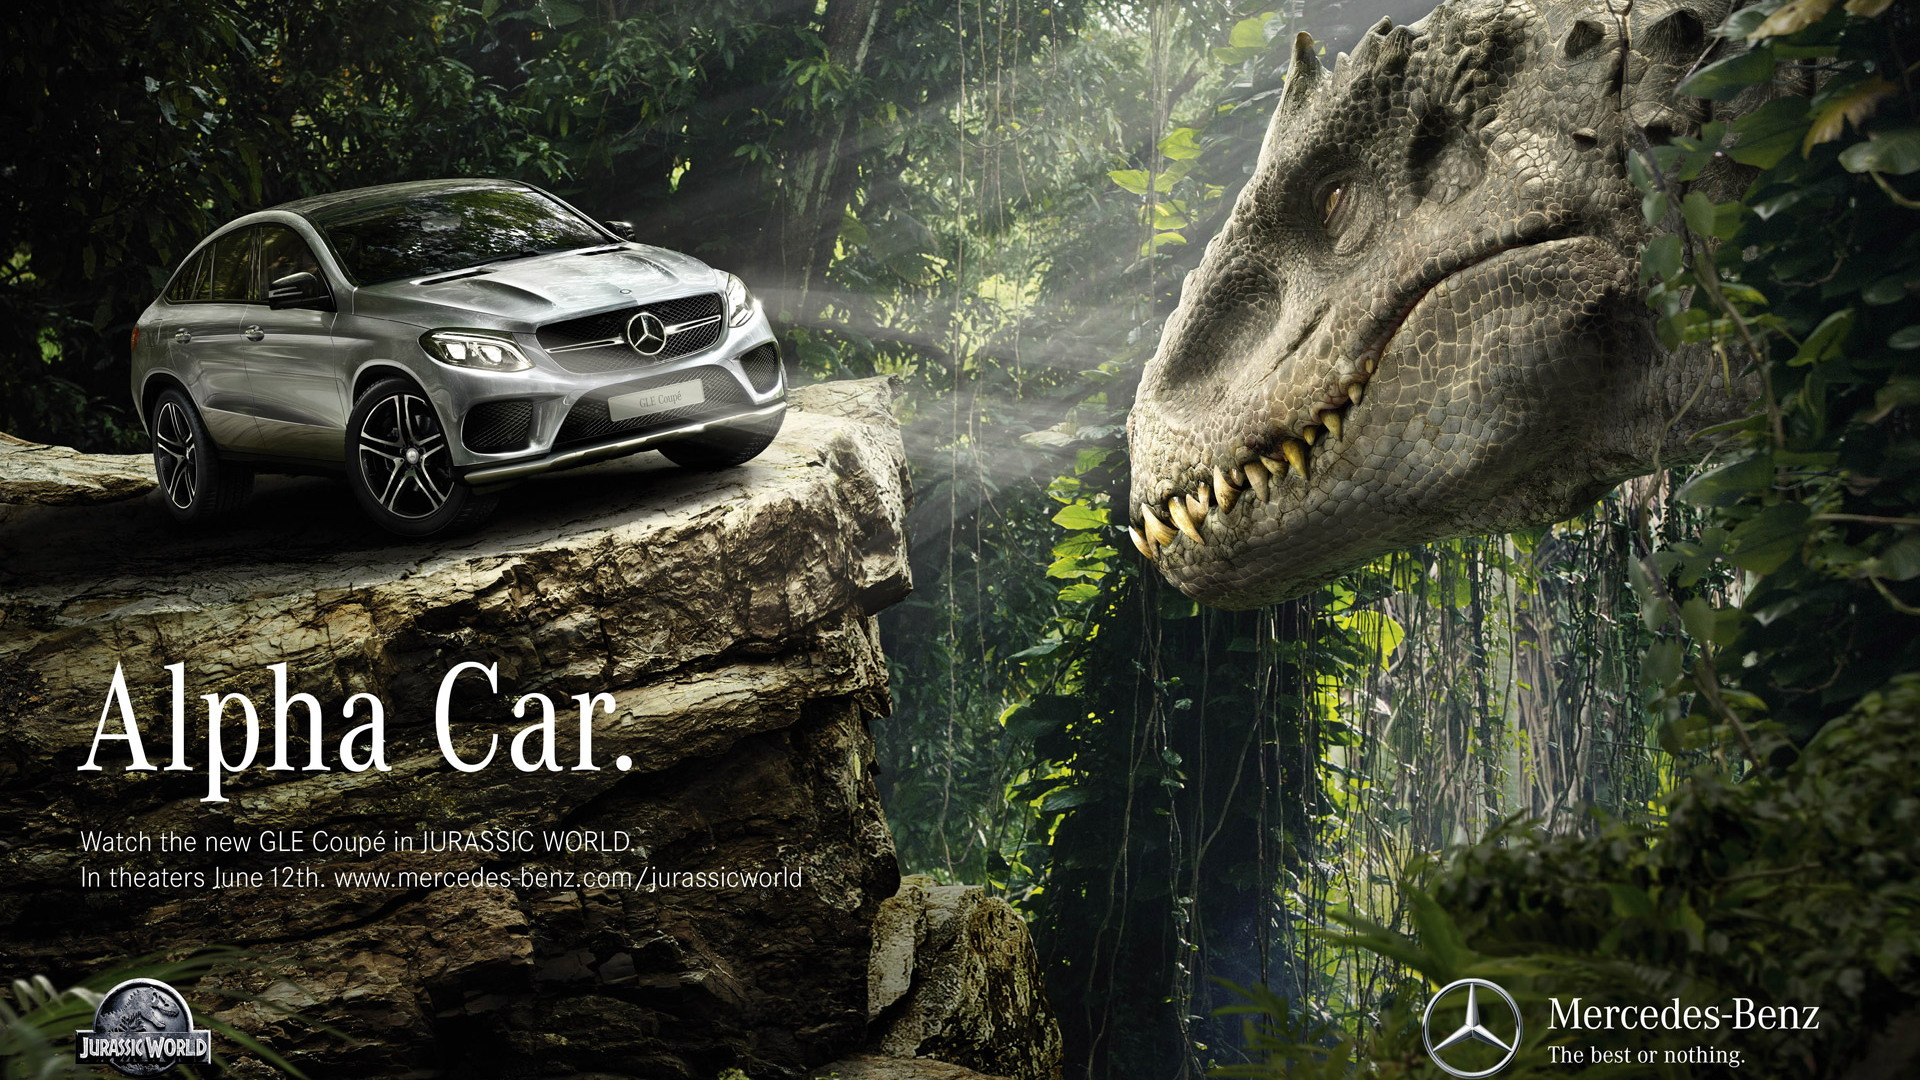 Mercedes-Benz vehicles in 'Jurassic World'